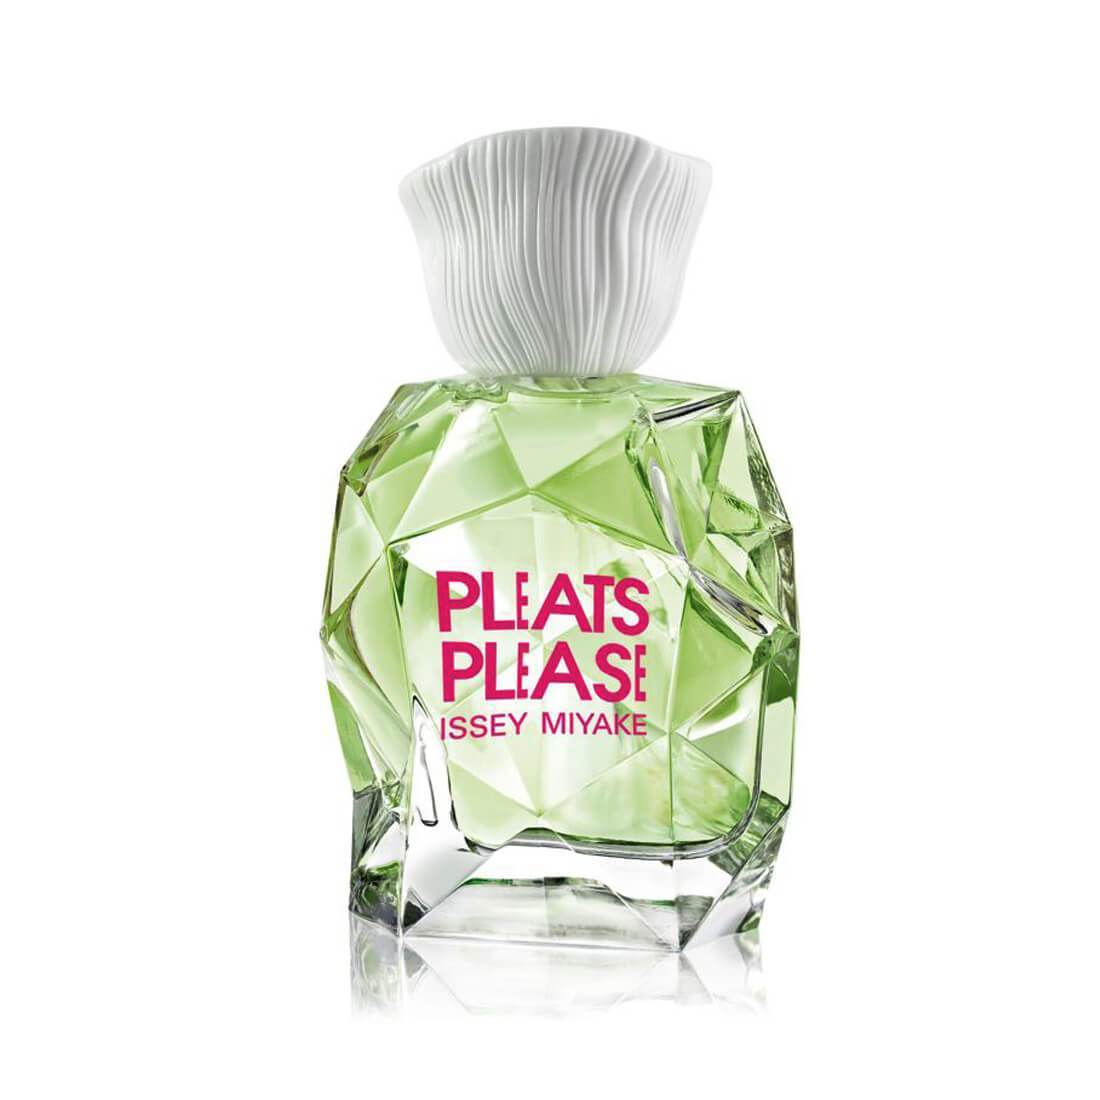 Issey Miyake Pleats Please  EDT Perfume For Women - 100ml